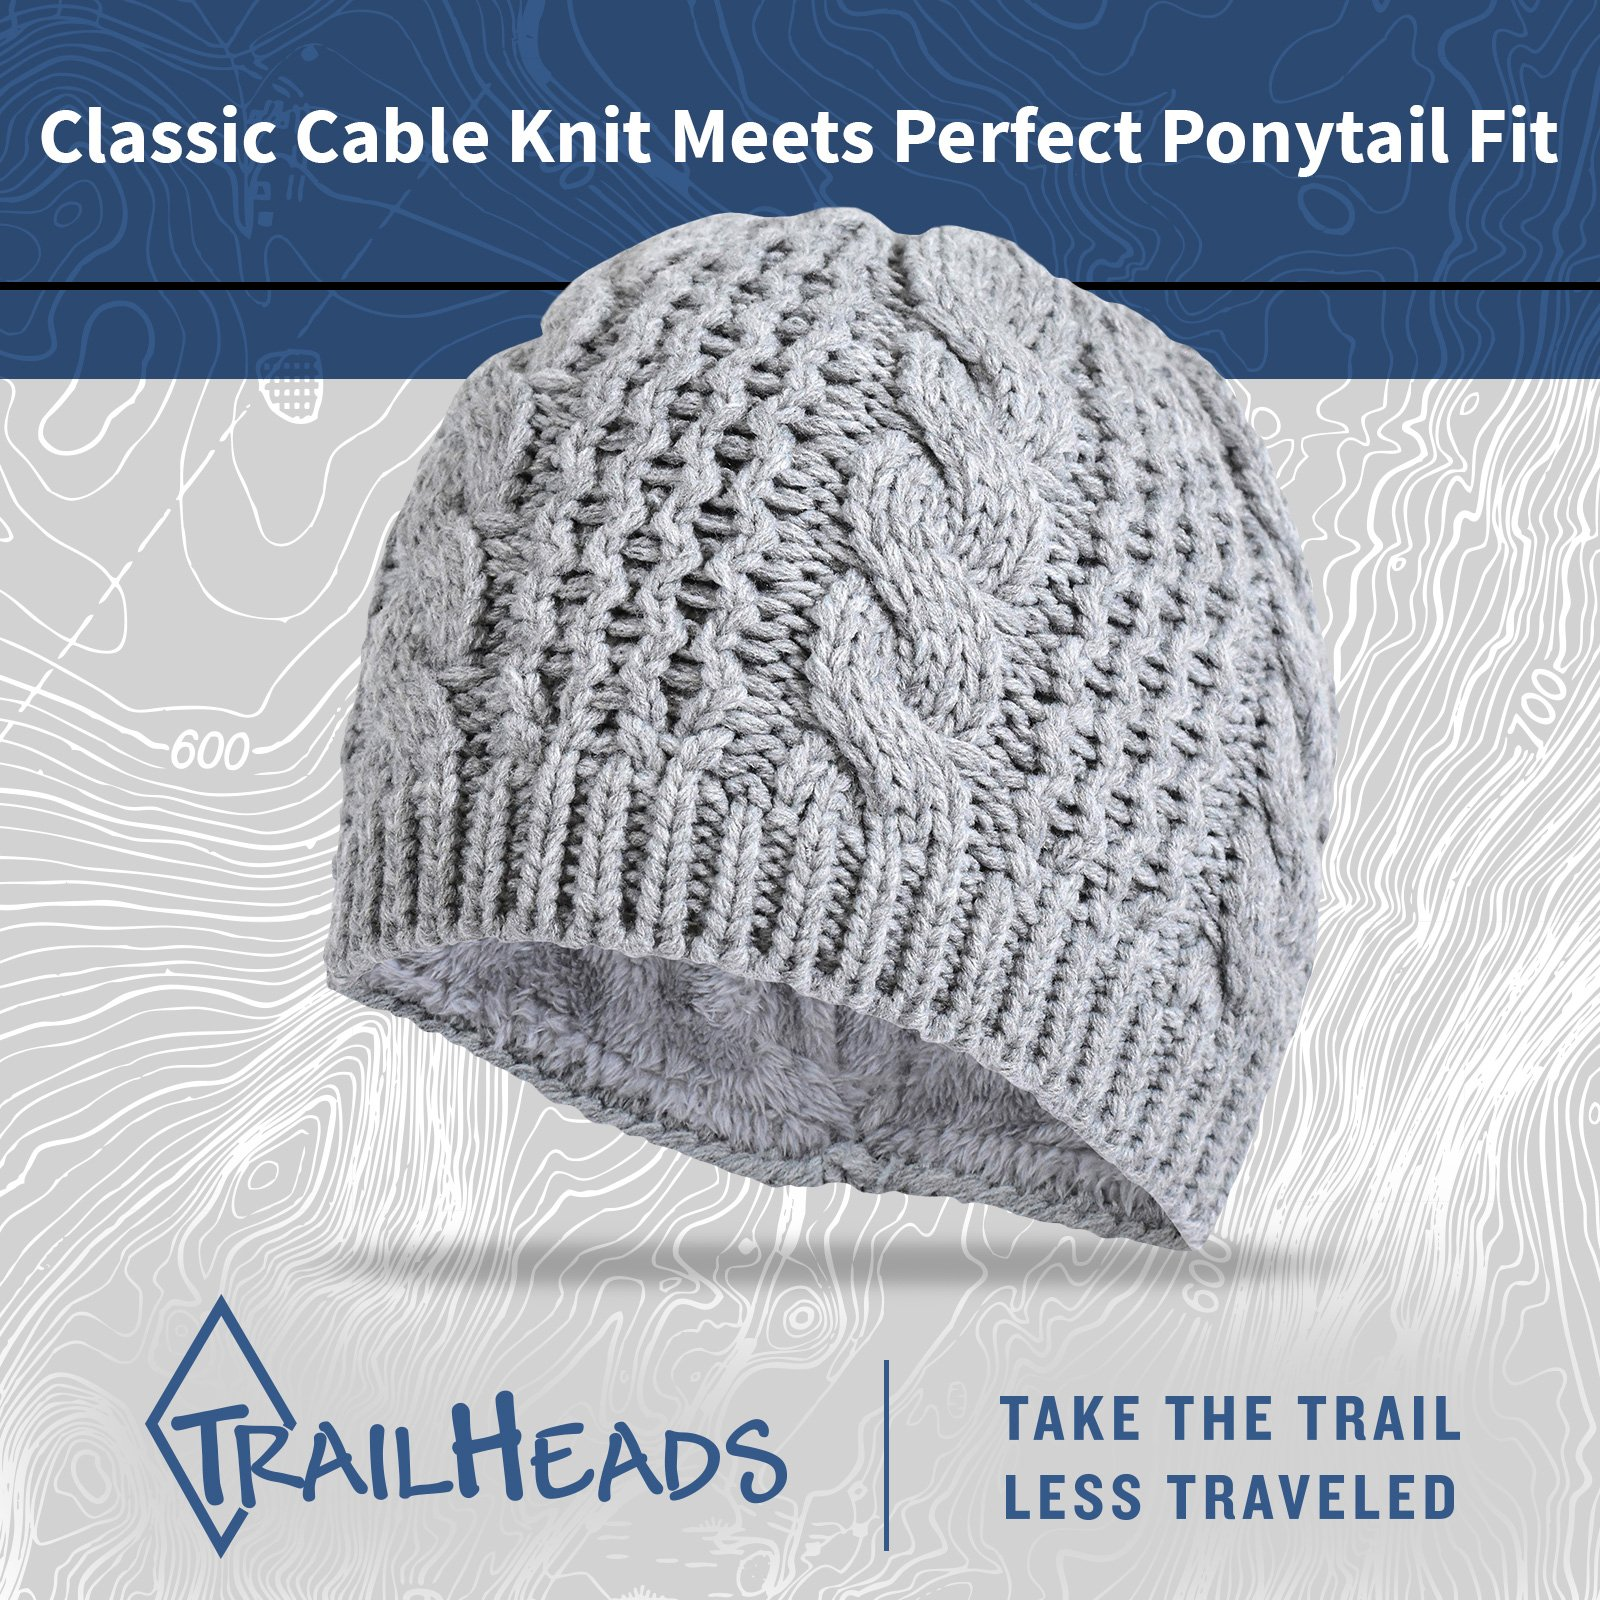 TrailHeads Women's Cable Knit Ponytail Beanie - storm grey by TrailHeads (Image #5)